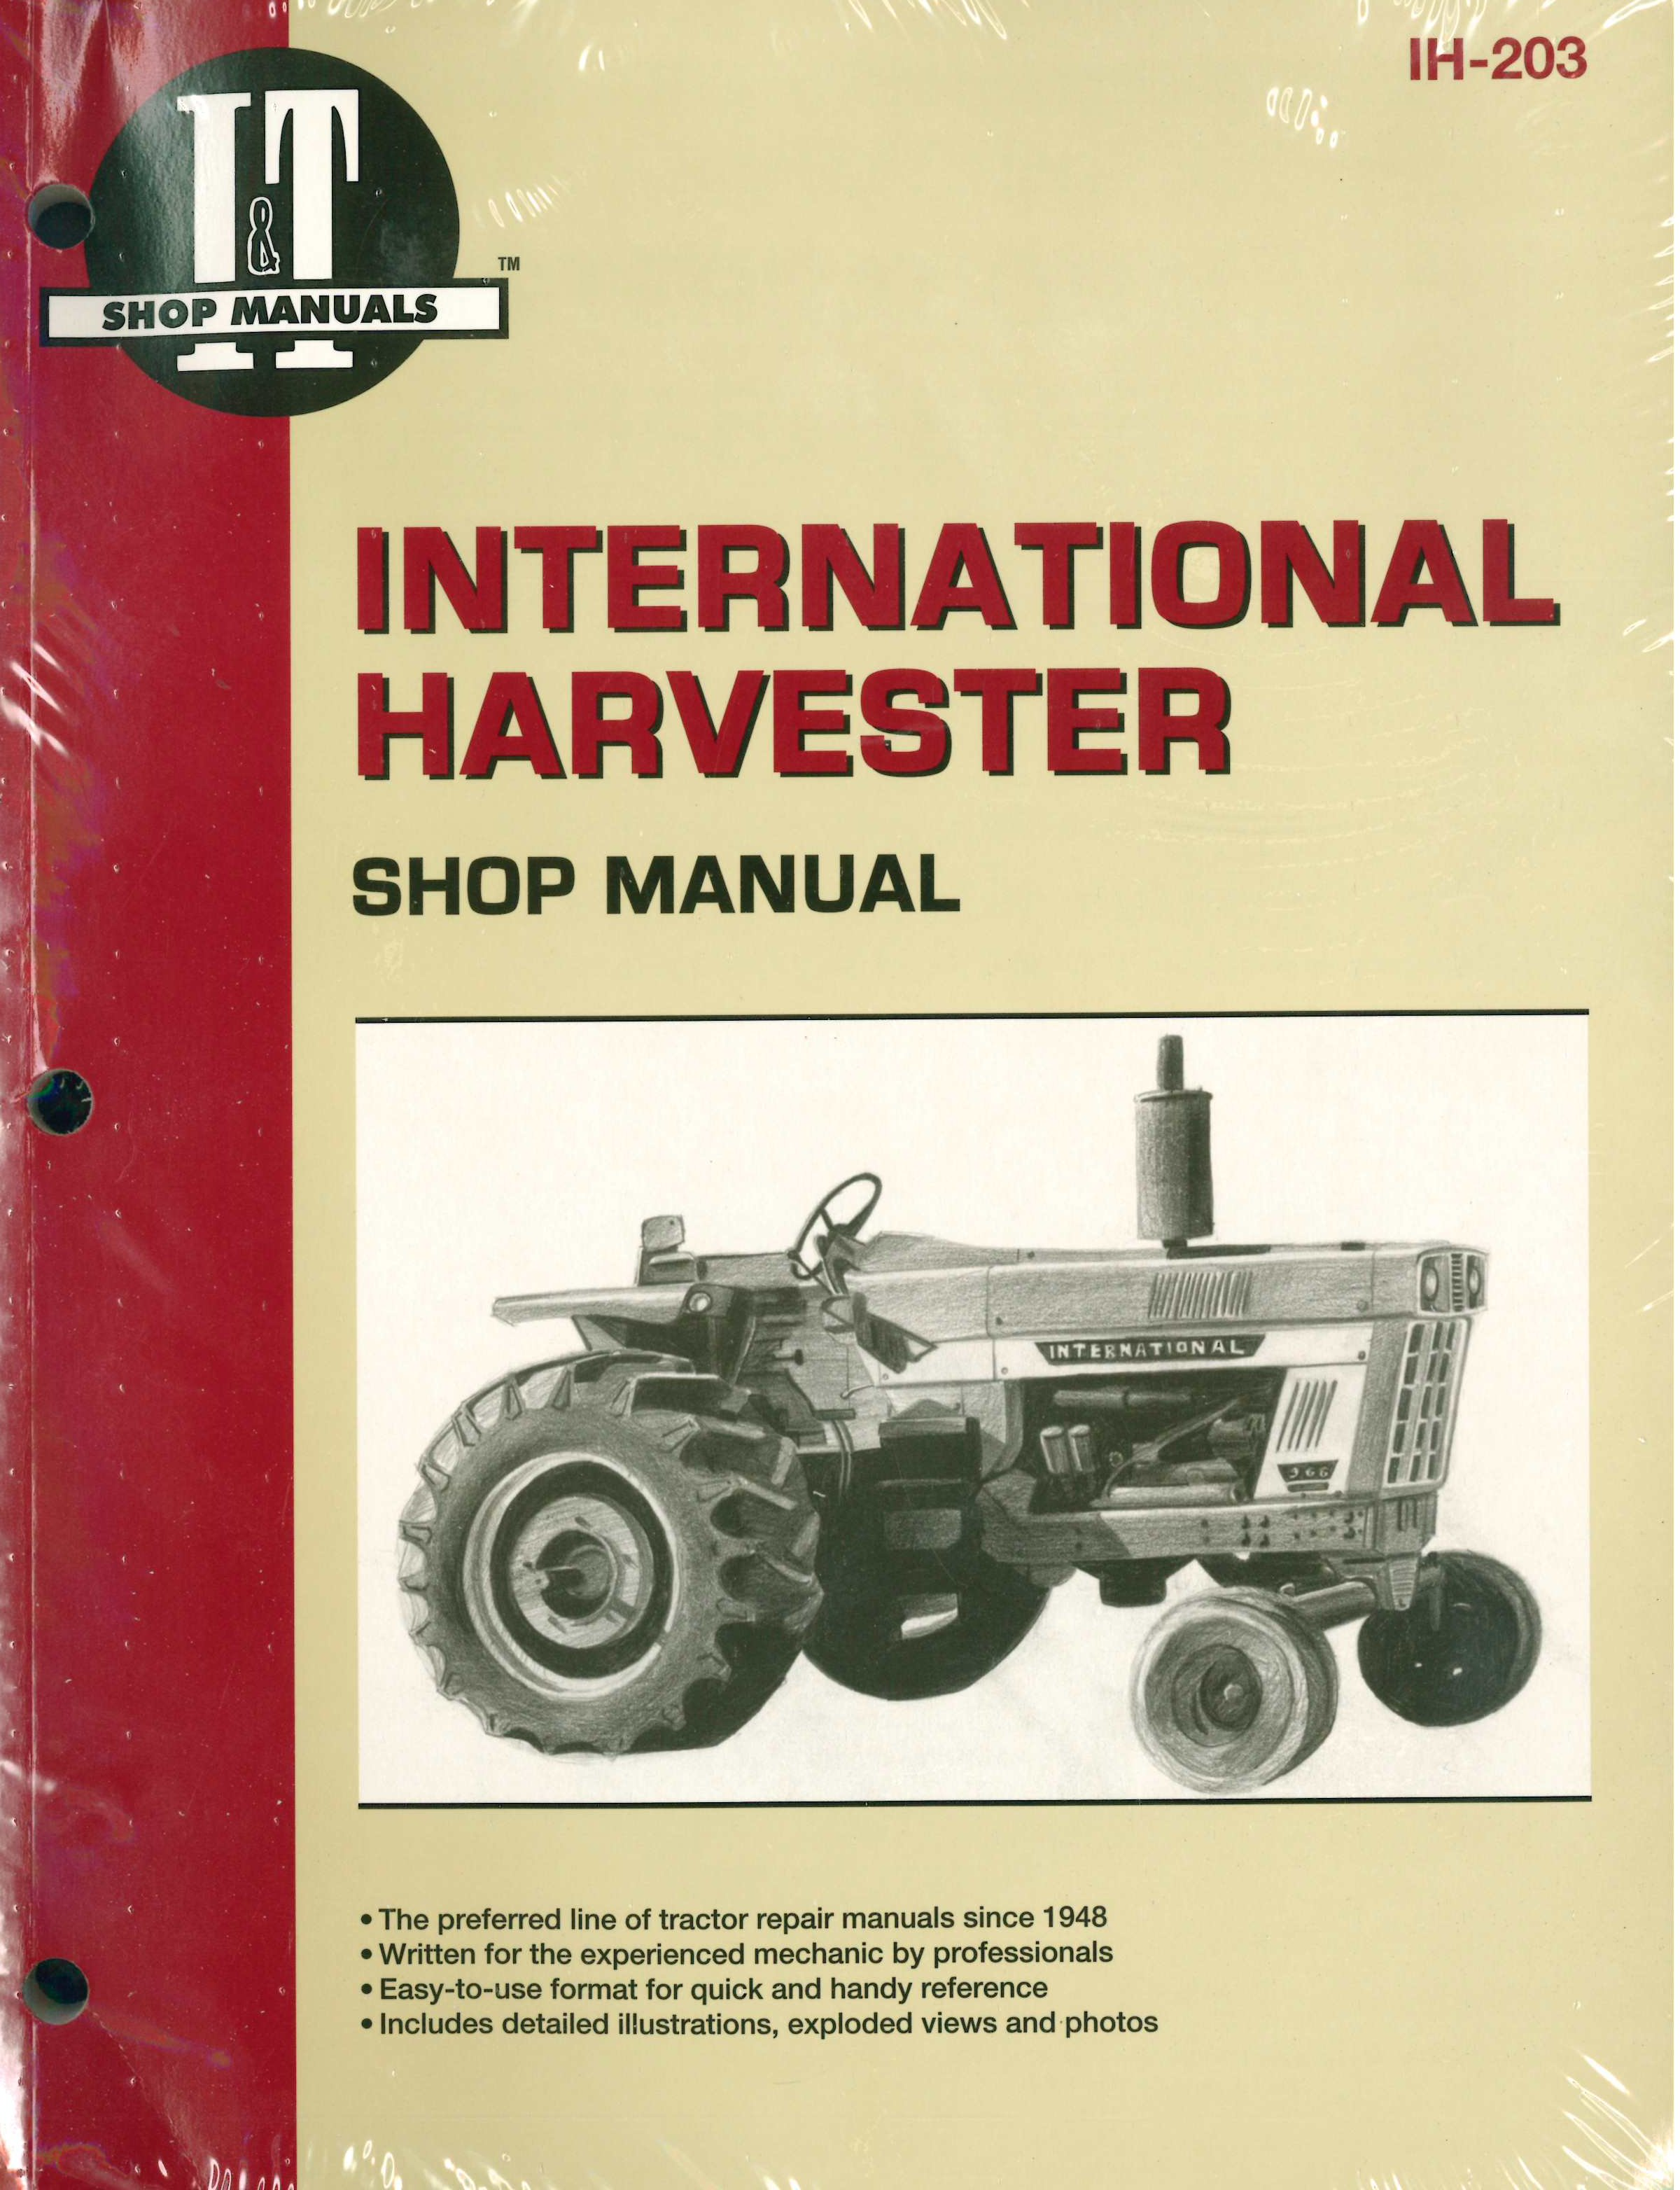 International Harvester Tractor Service Manual 454 464 484 574 584 1066  International Tractor Wiring Diagram International 1066 Wiring Diagram